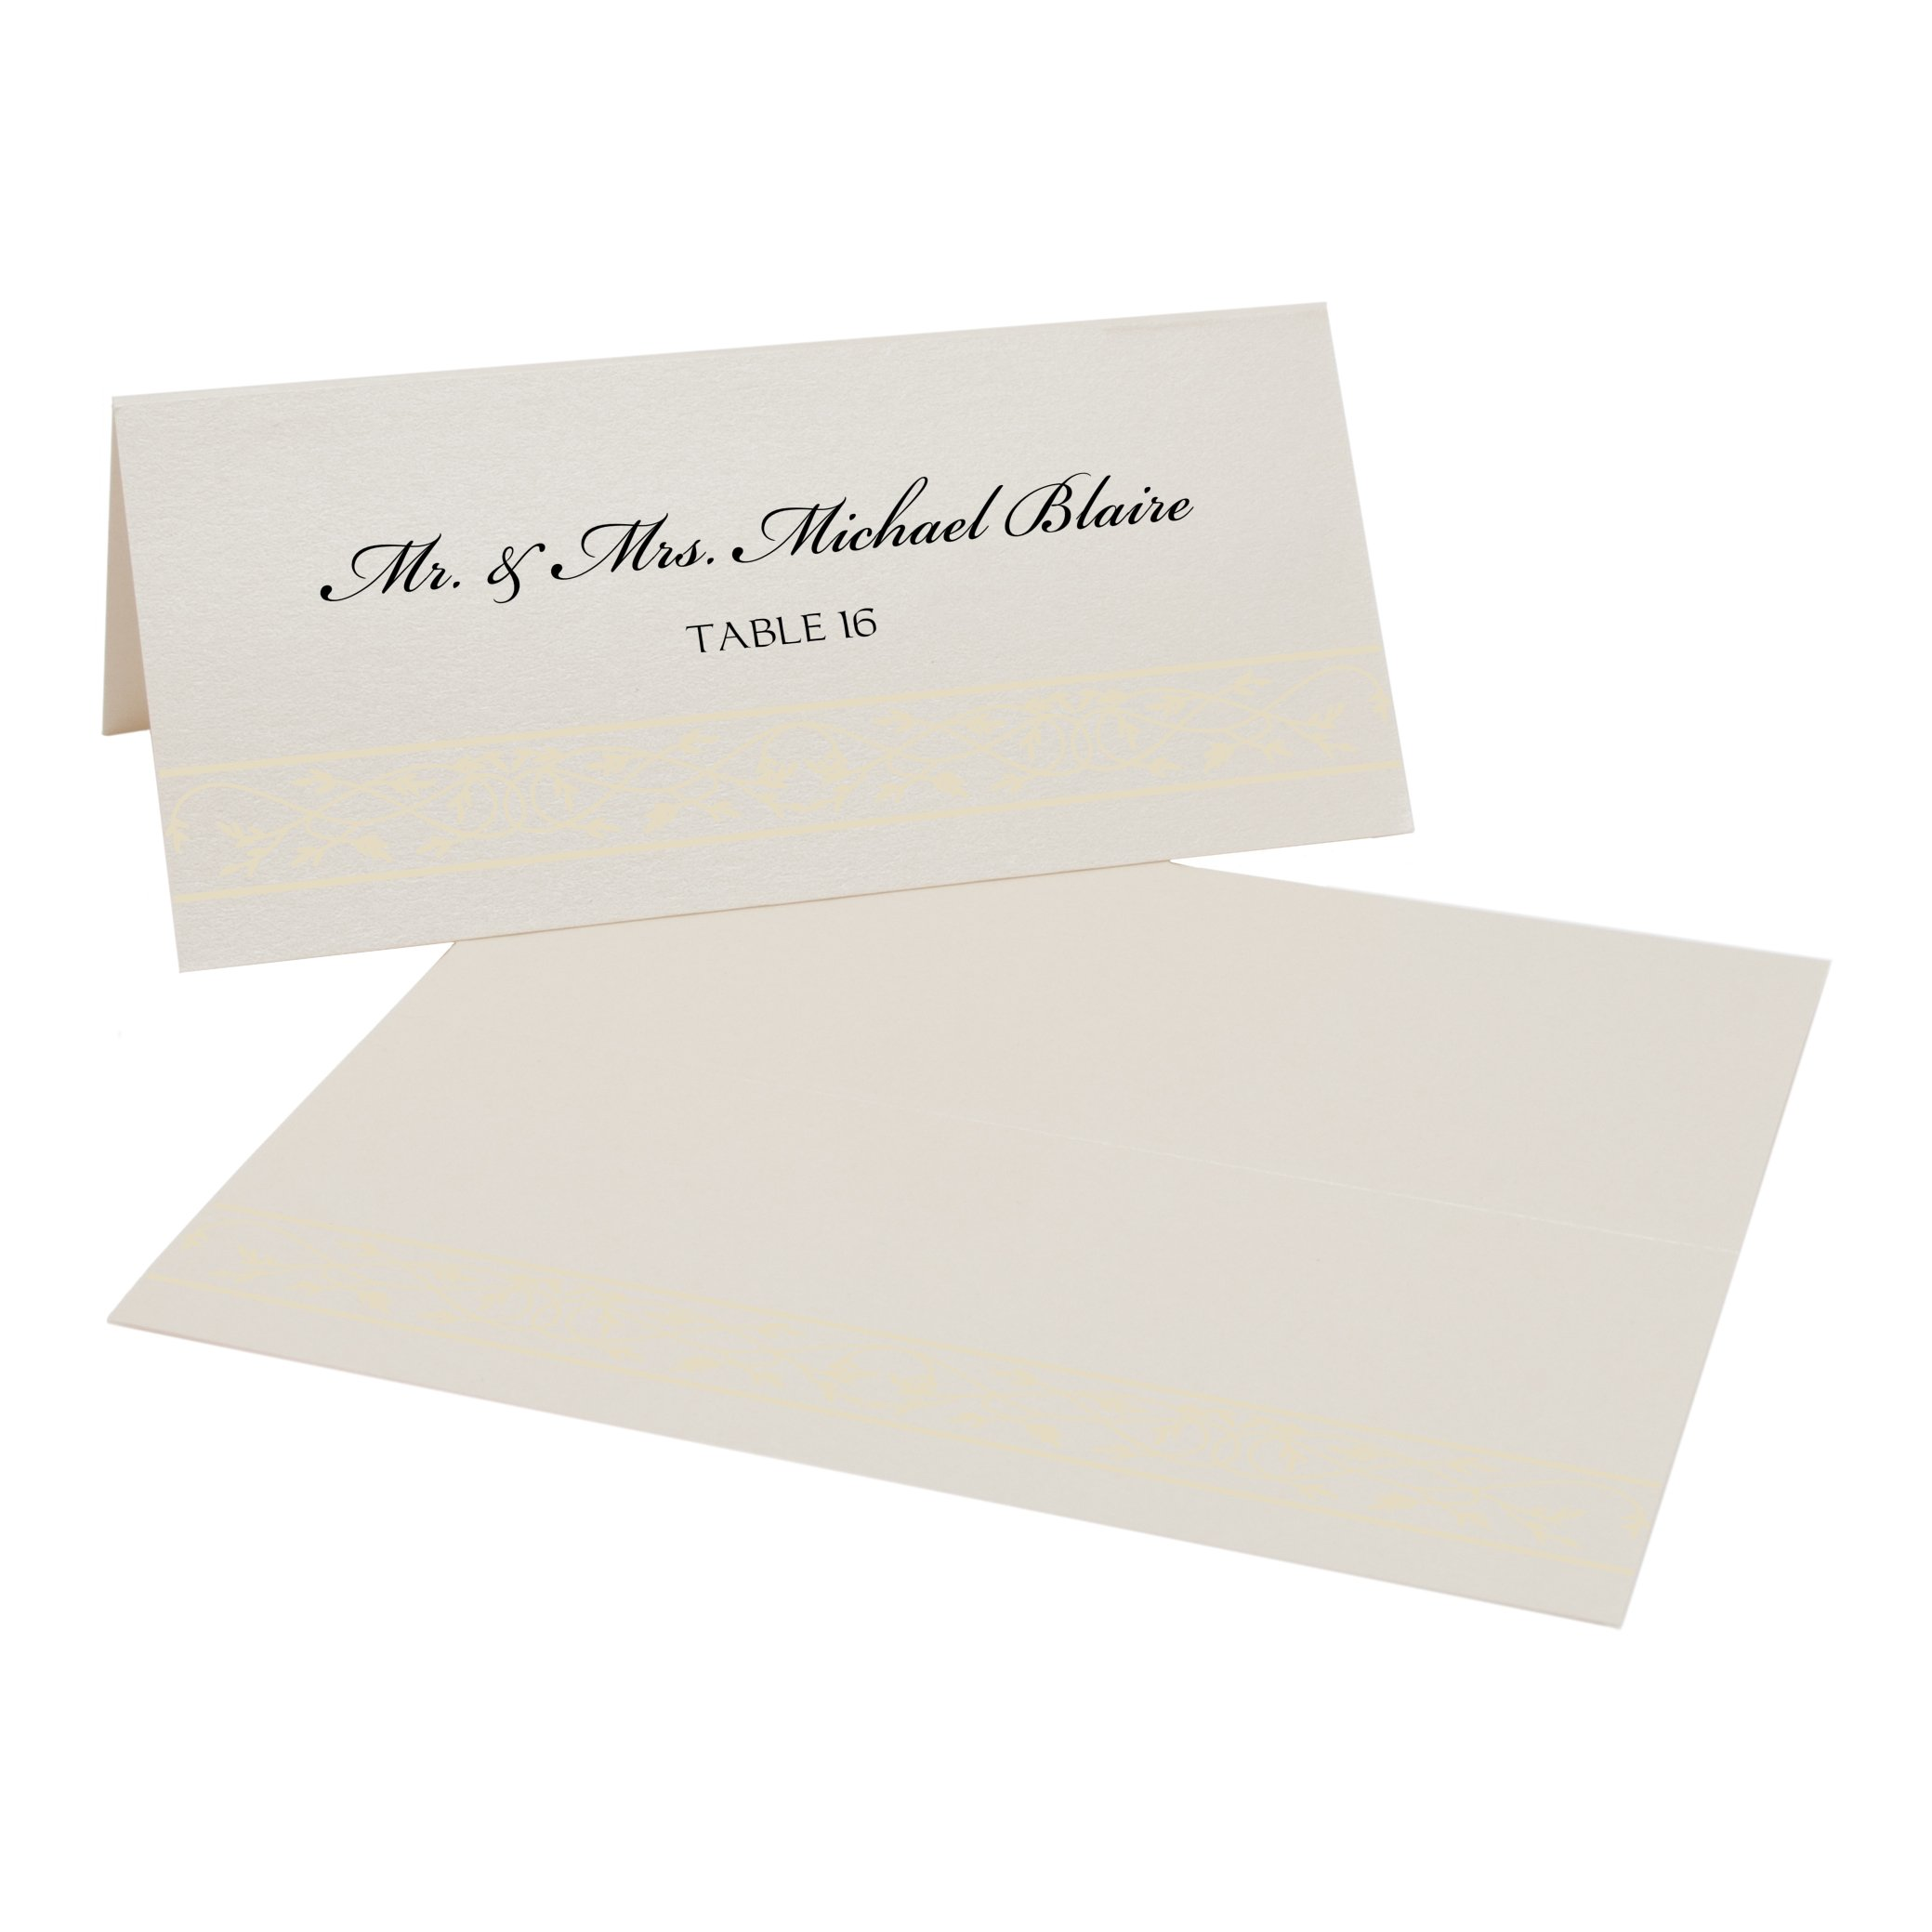 Celtic Leaf Border Place Cards, Champagne, Ivory, Set of 375 by Documents and Designs